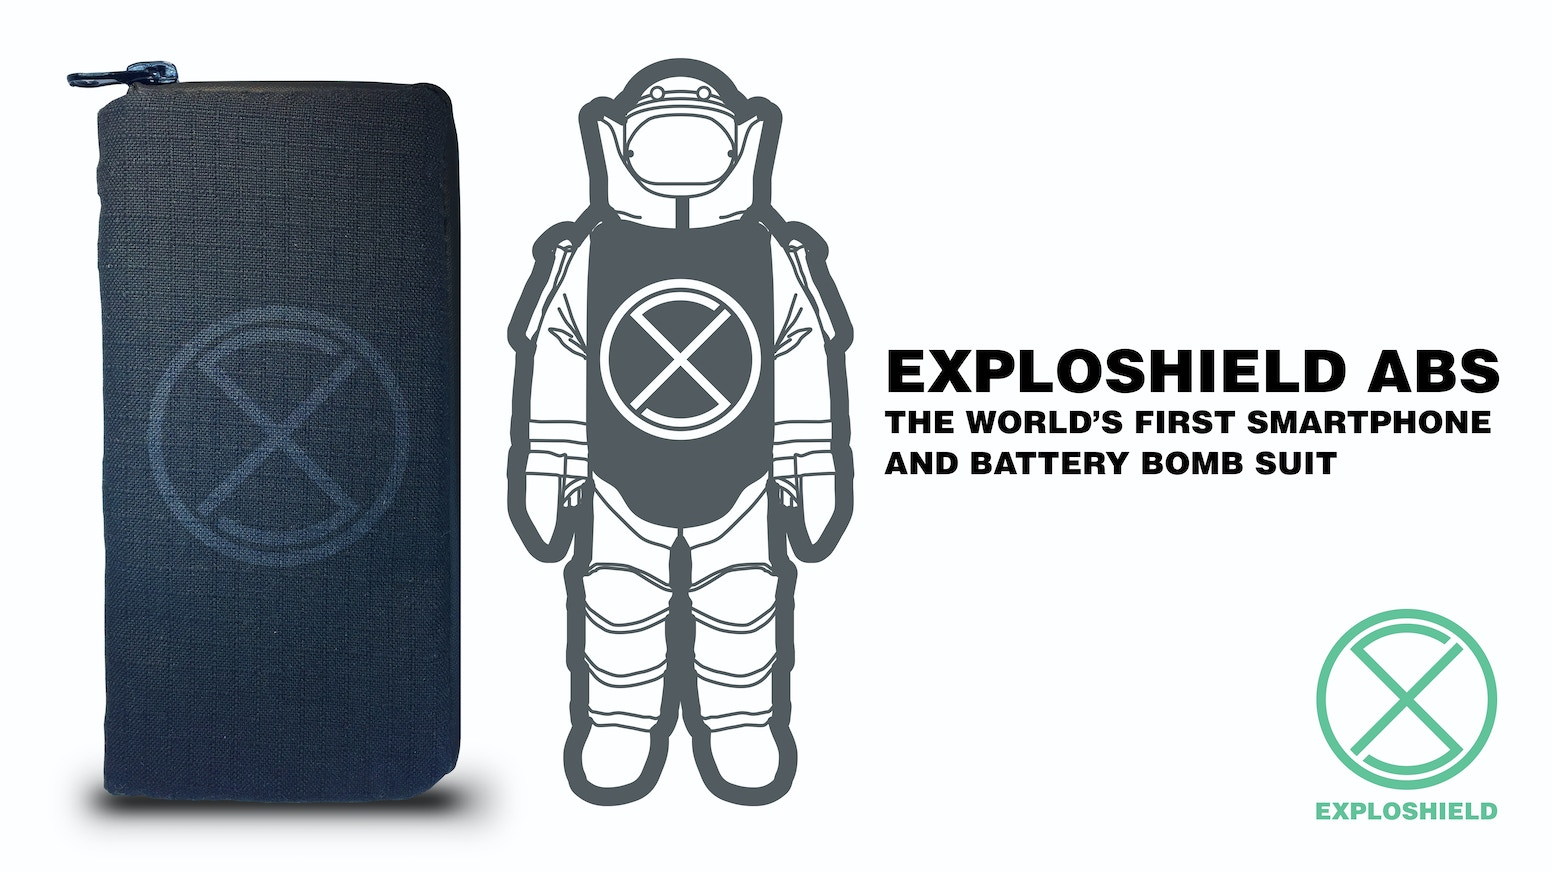 Real-life advanced bomb suit bullet proof materials, specially designed to protect you from smartphone and portable battery explosions.